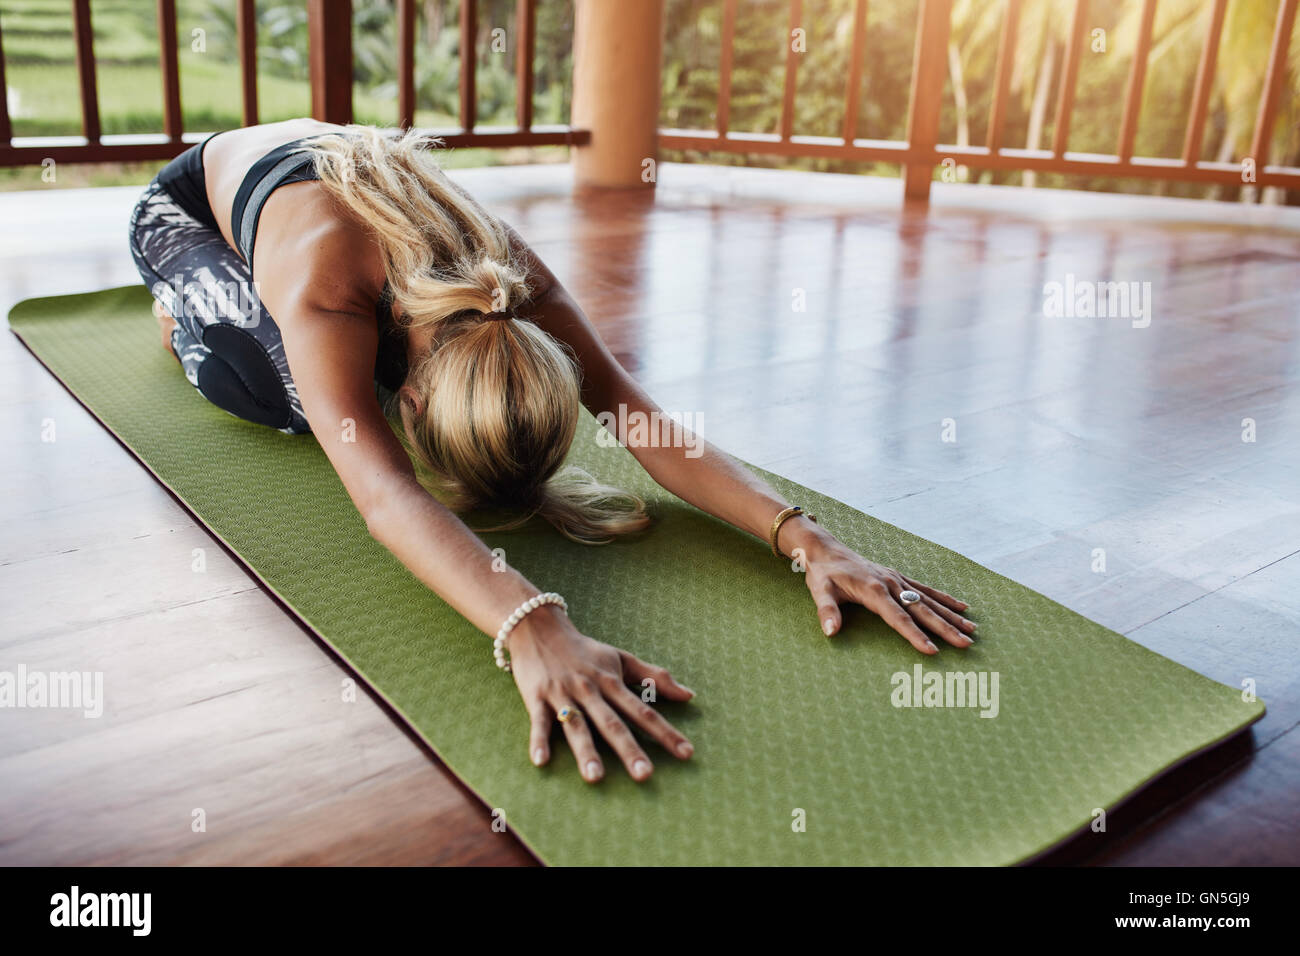 Young woman doing stretching workout on fitness mat. Female performing yoga on exercise mat at gym. Child Pose, Stock Photo